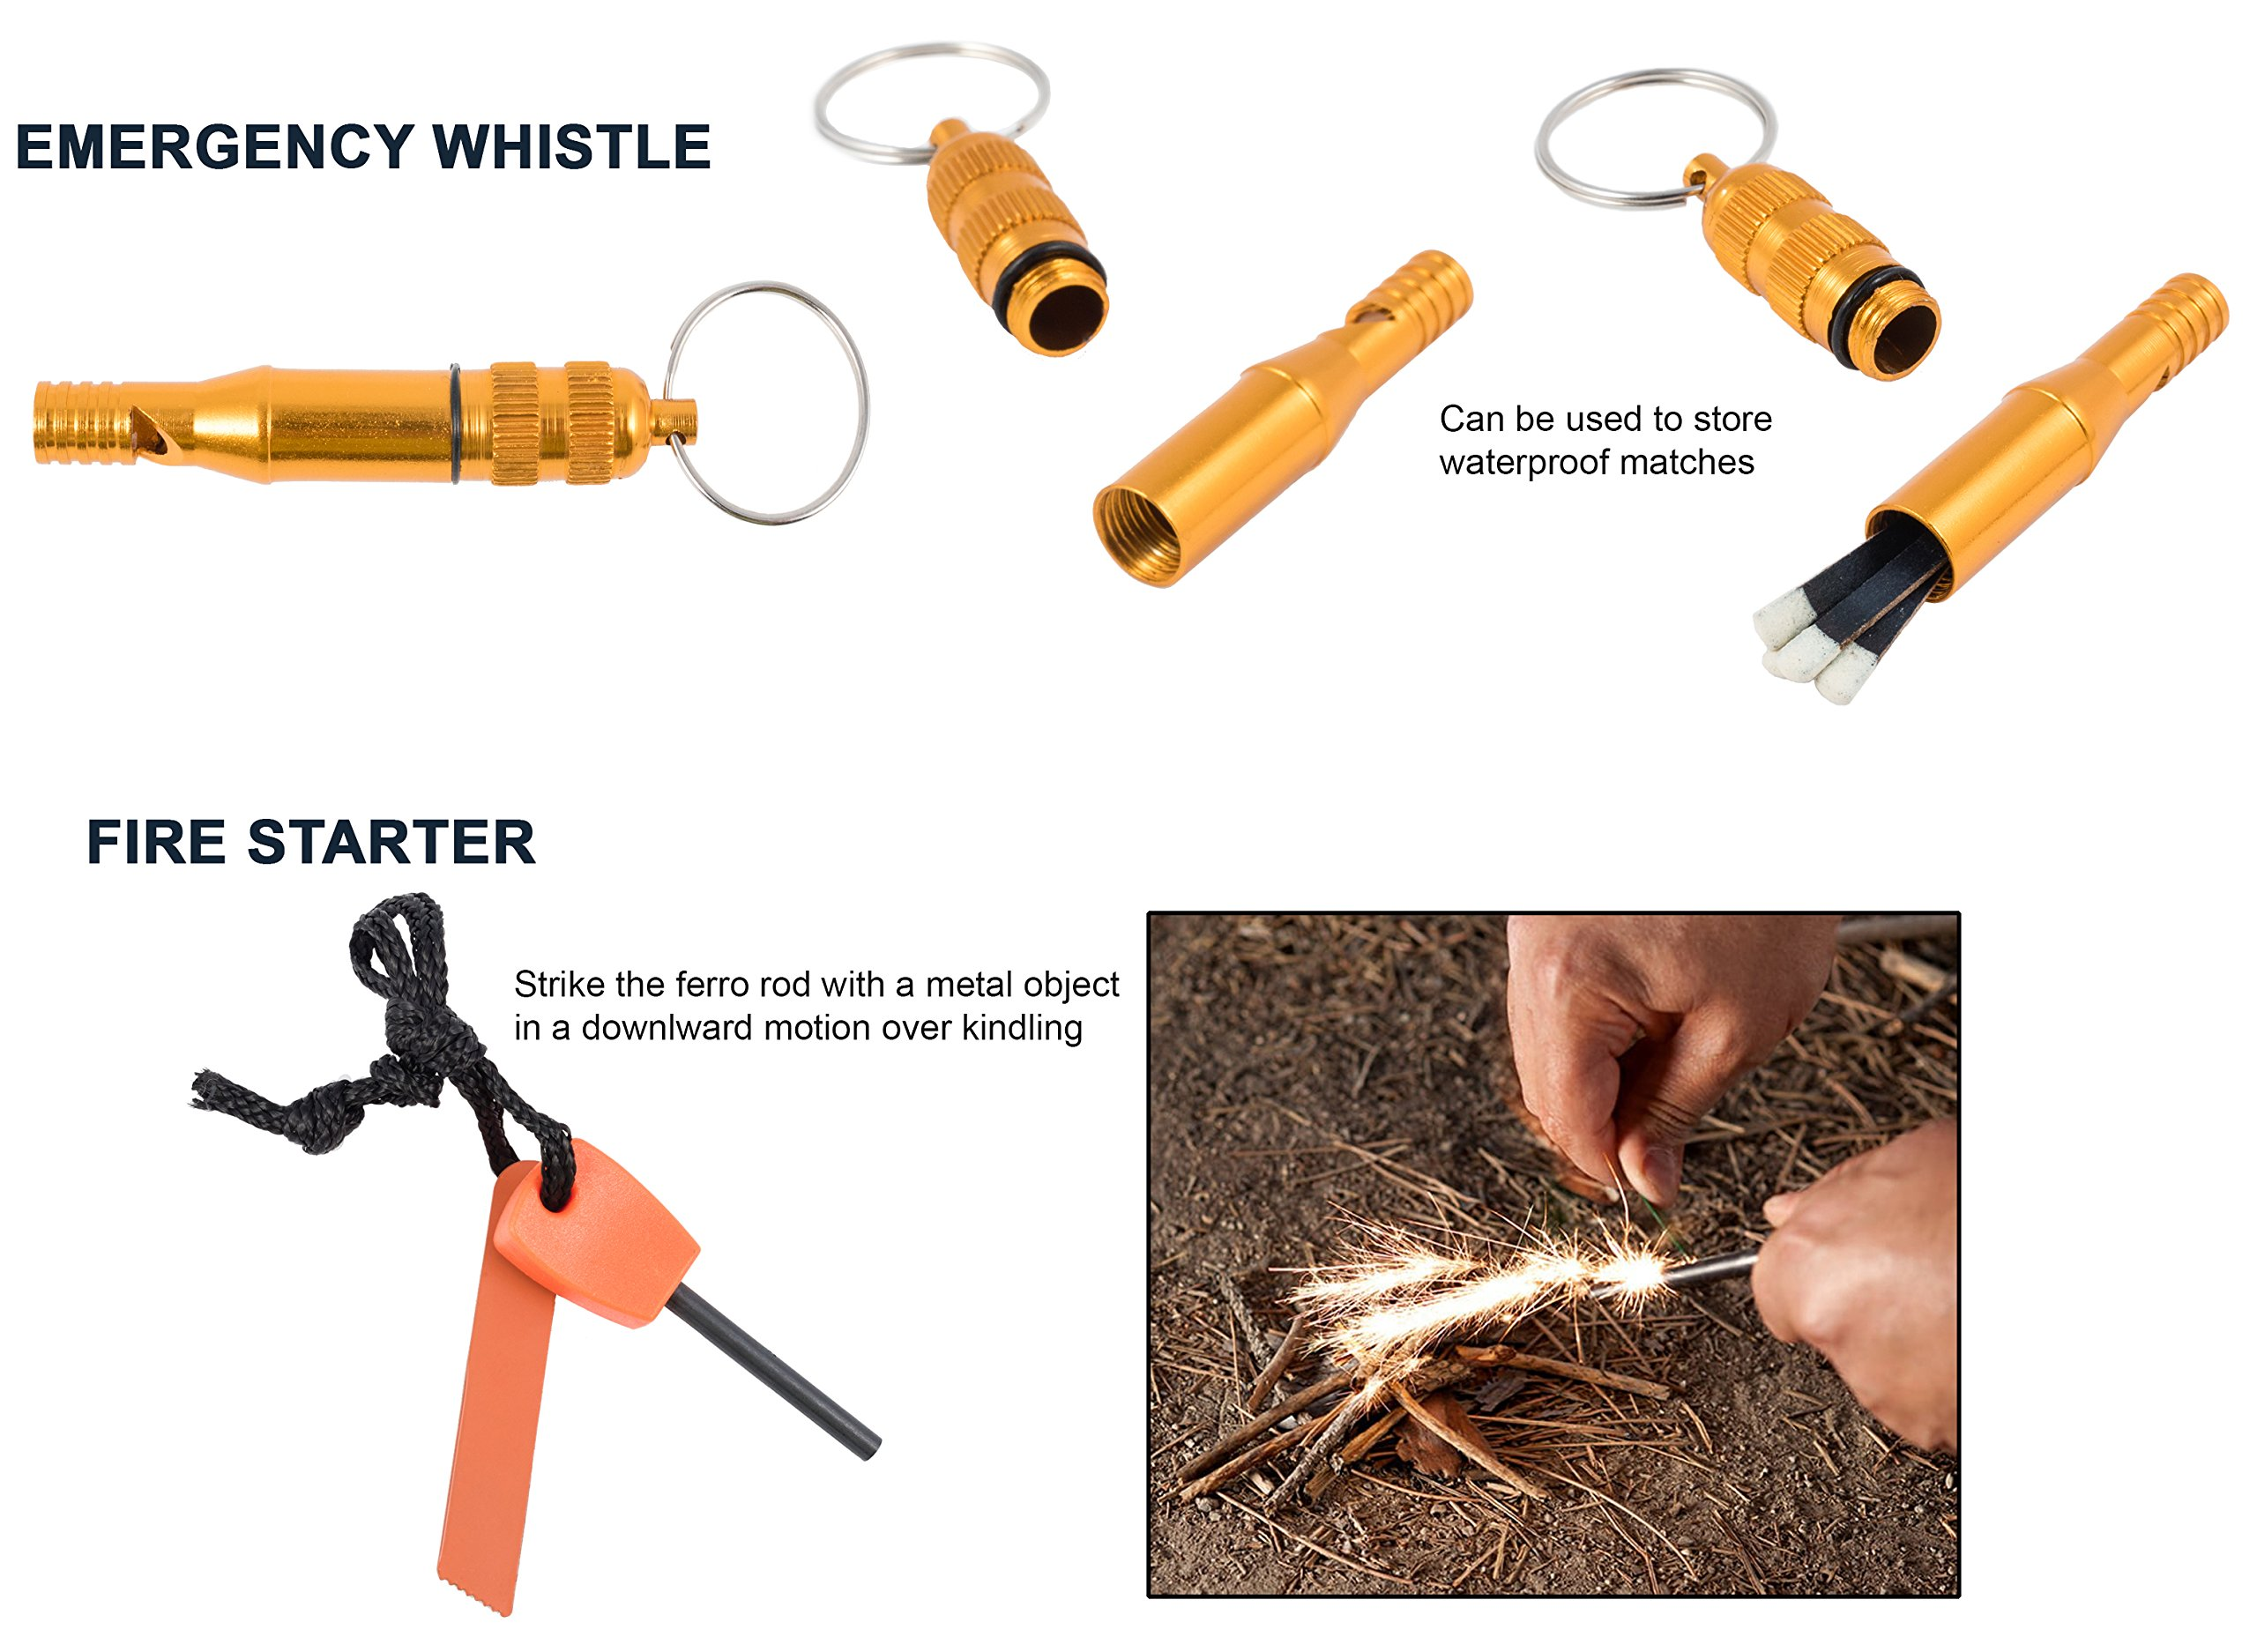 Emergency Survival Kit Bundle.11 Items. Pocket size. Essential Camping Survival Gear, Folding knife, Fire Starter, Compass, Paracord Survival Bracelet, Emergency Blanket, Whistle, Ebook, and more by Booyah Basix (Image #7)